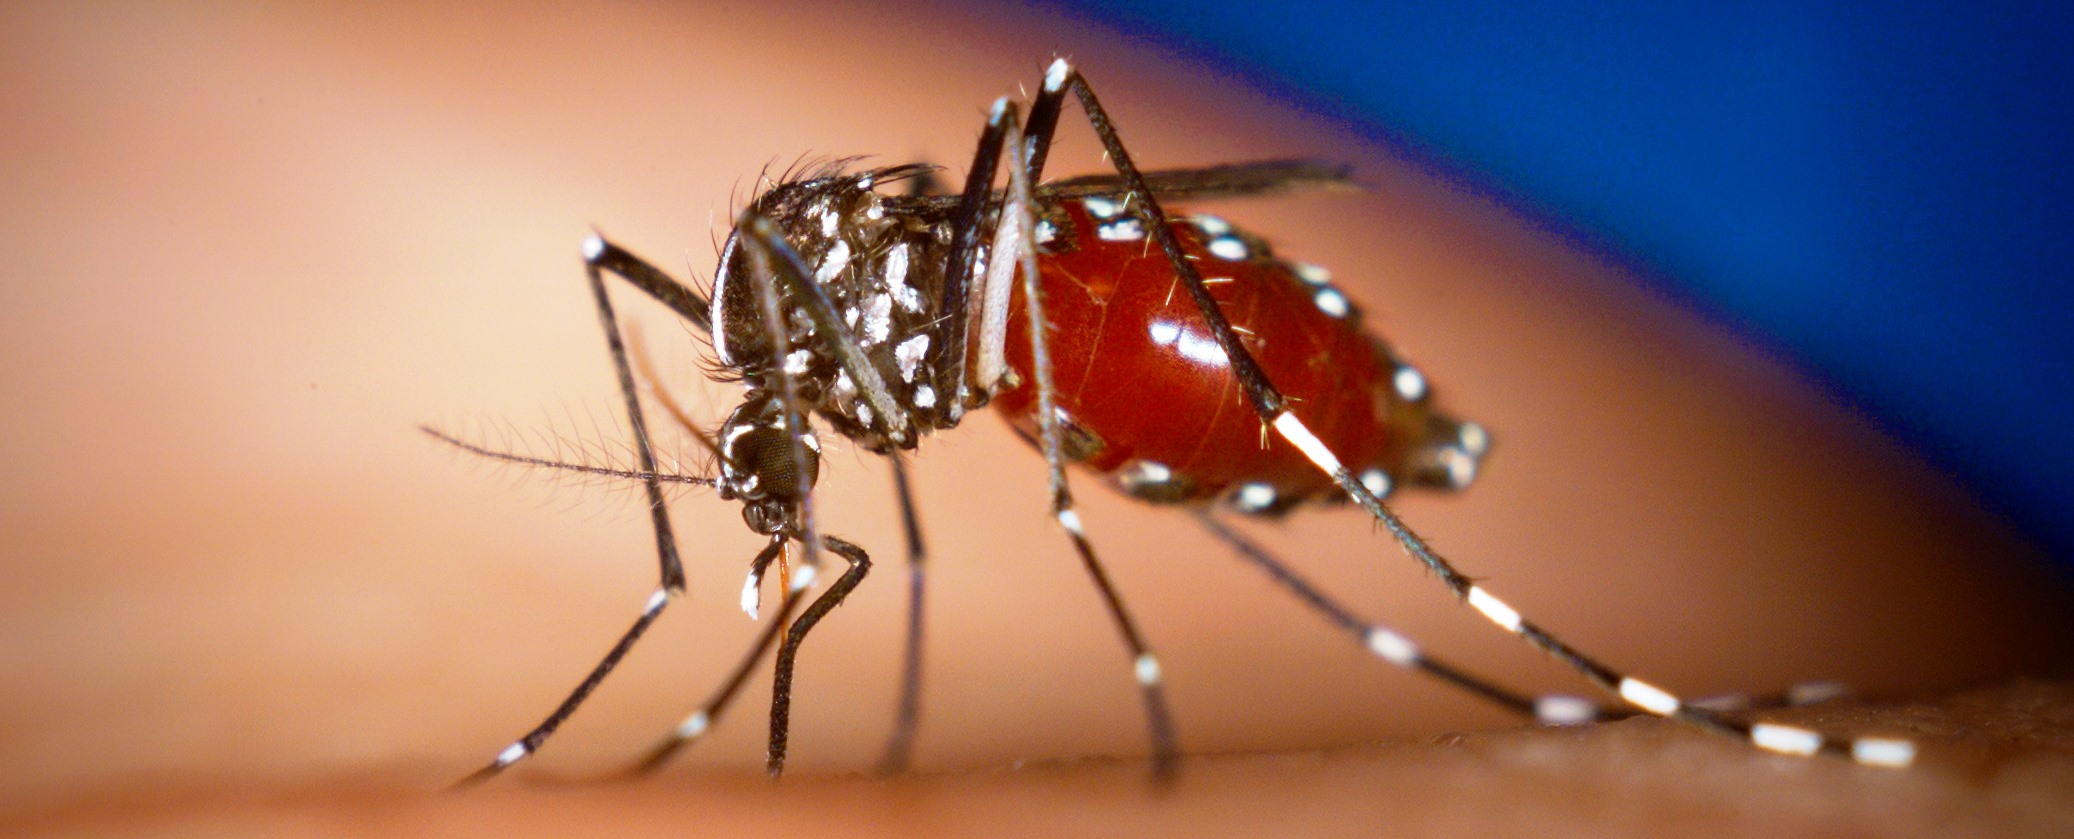 An Aedes albopictus female mosquito feeds on a human blood meal. Photo by James Gathany, Centers for Disease Control and Prevention